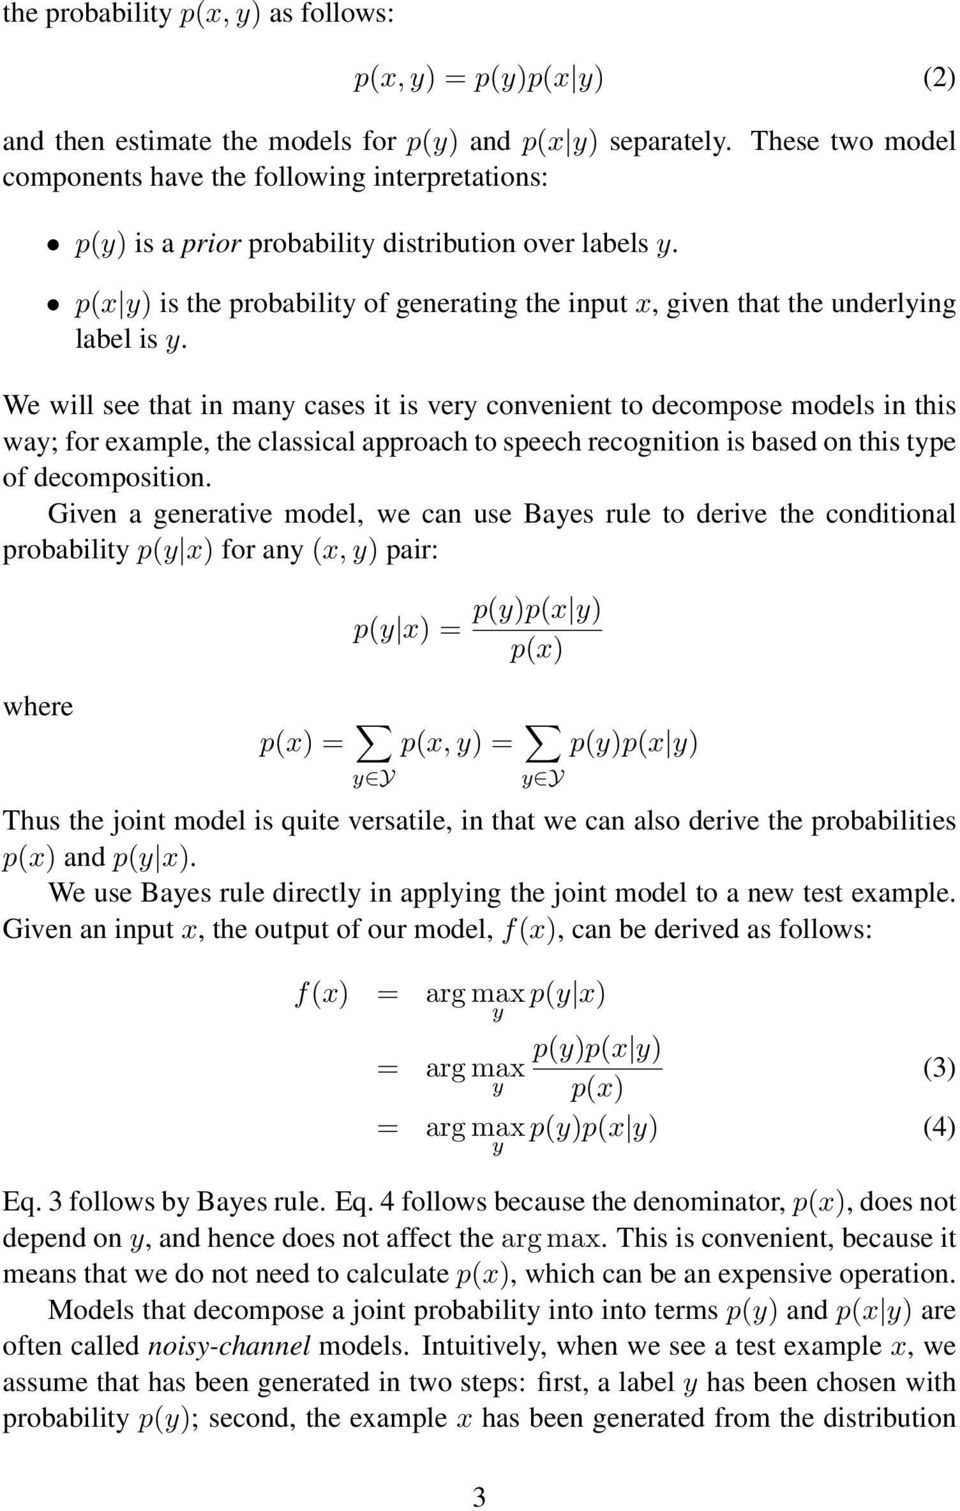 p(x y) is the probability of generating the input x, given that the underlying label is y.